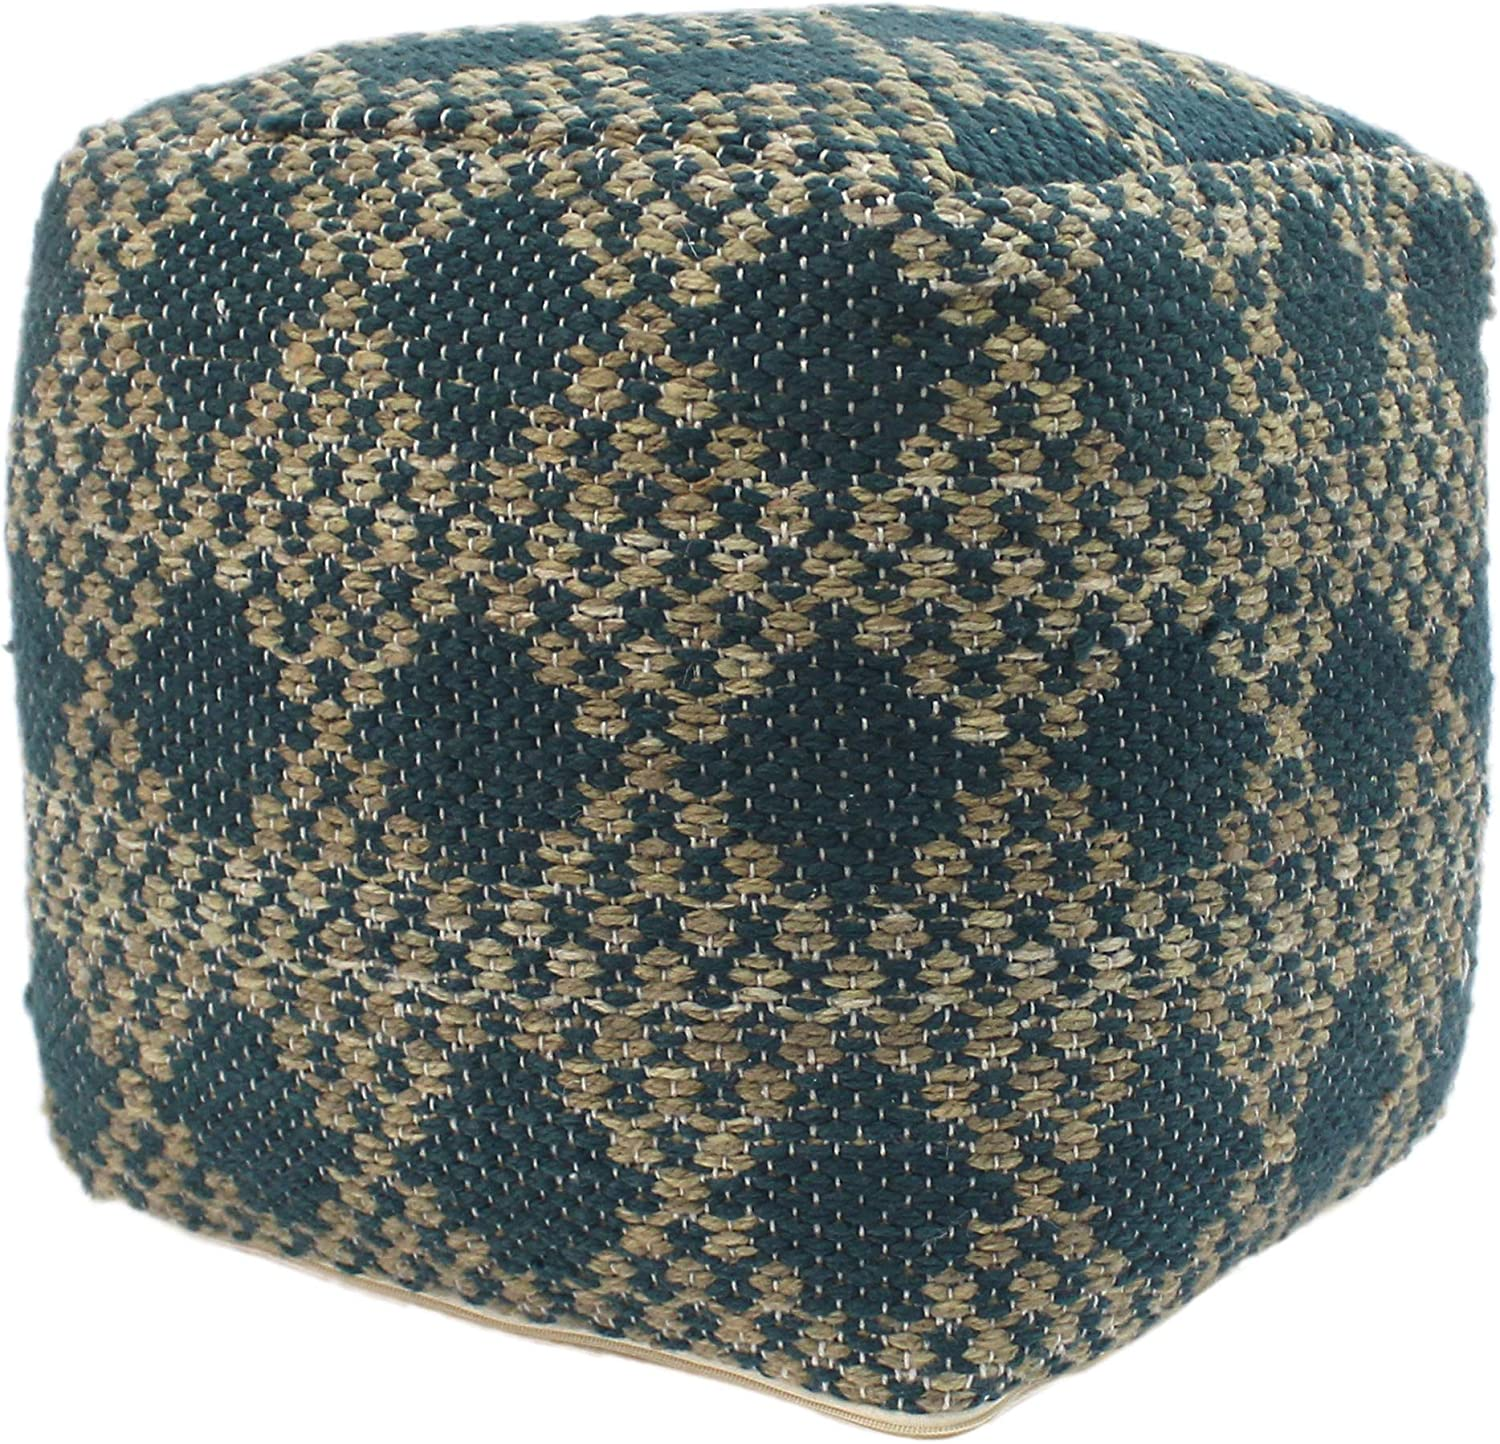 Christopher Knight famous Home Mamie Cube Pouf Teal Boho and Beige Ya Dealing full price reduction